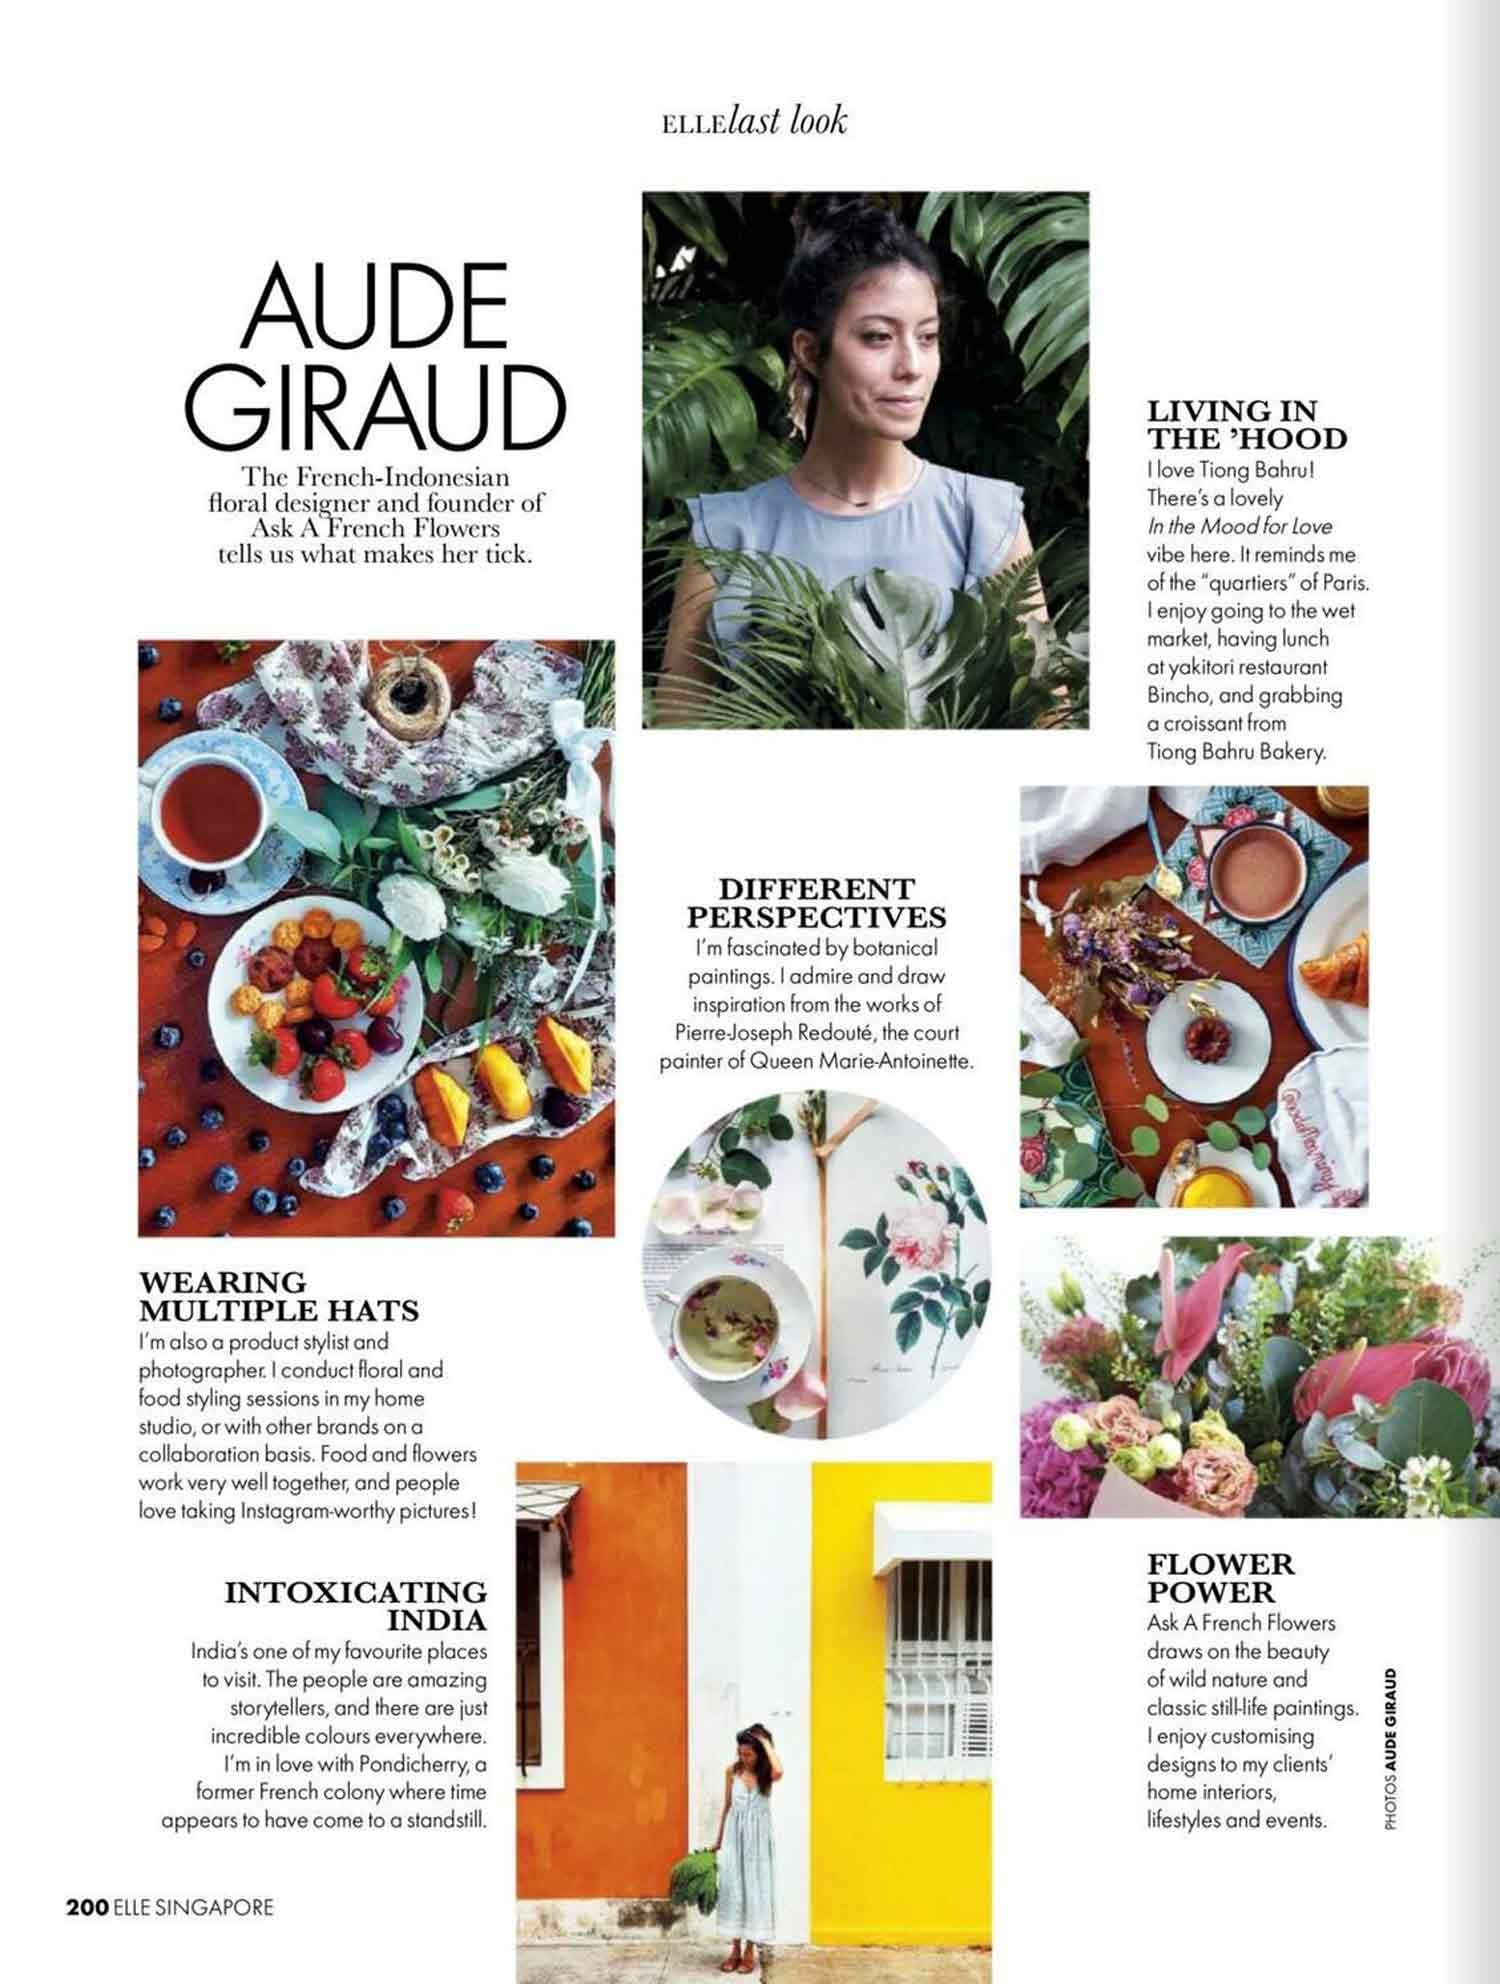 Aude Giraud being interviewed in Elle Singapore magazine